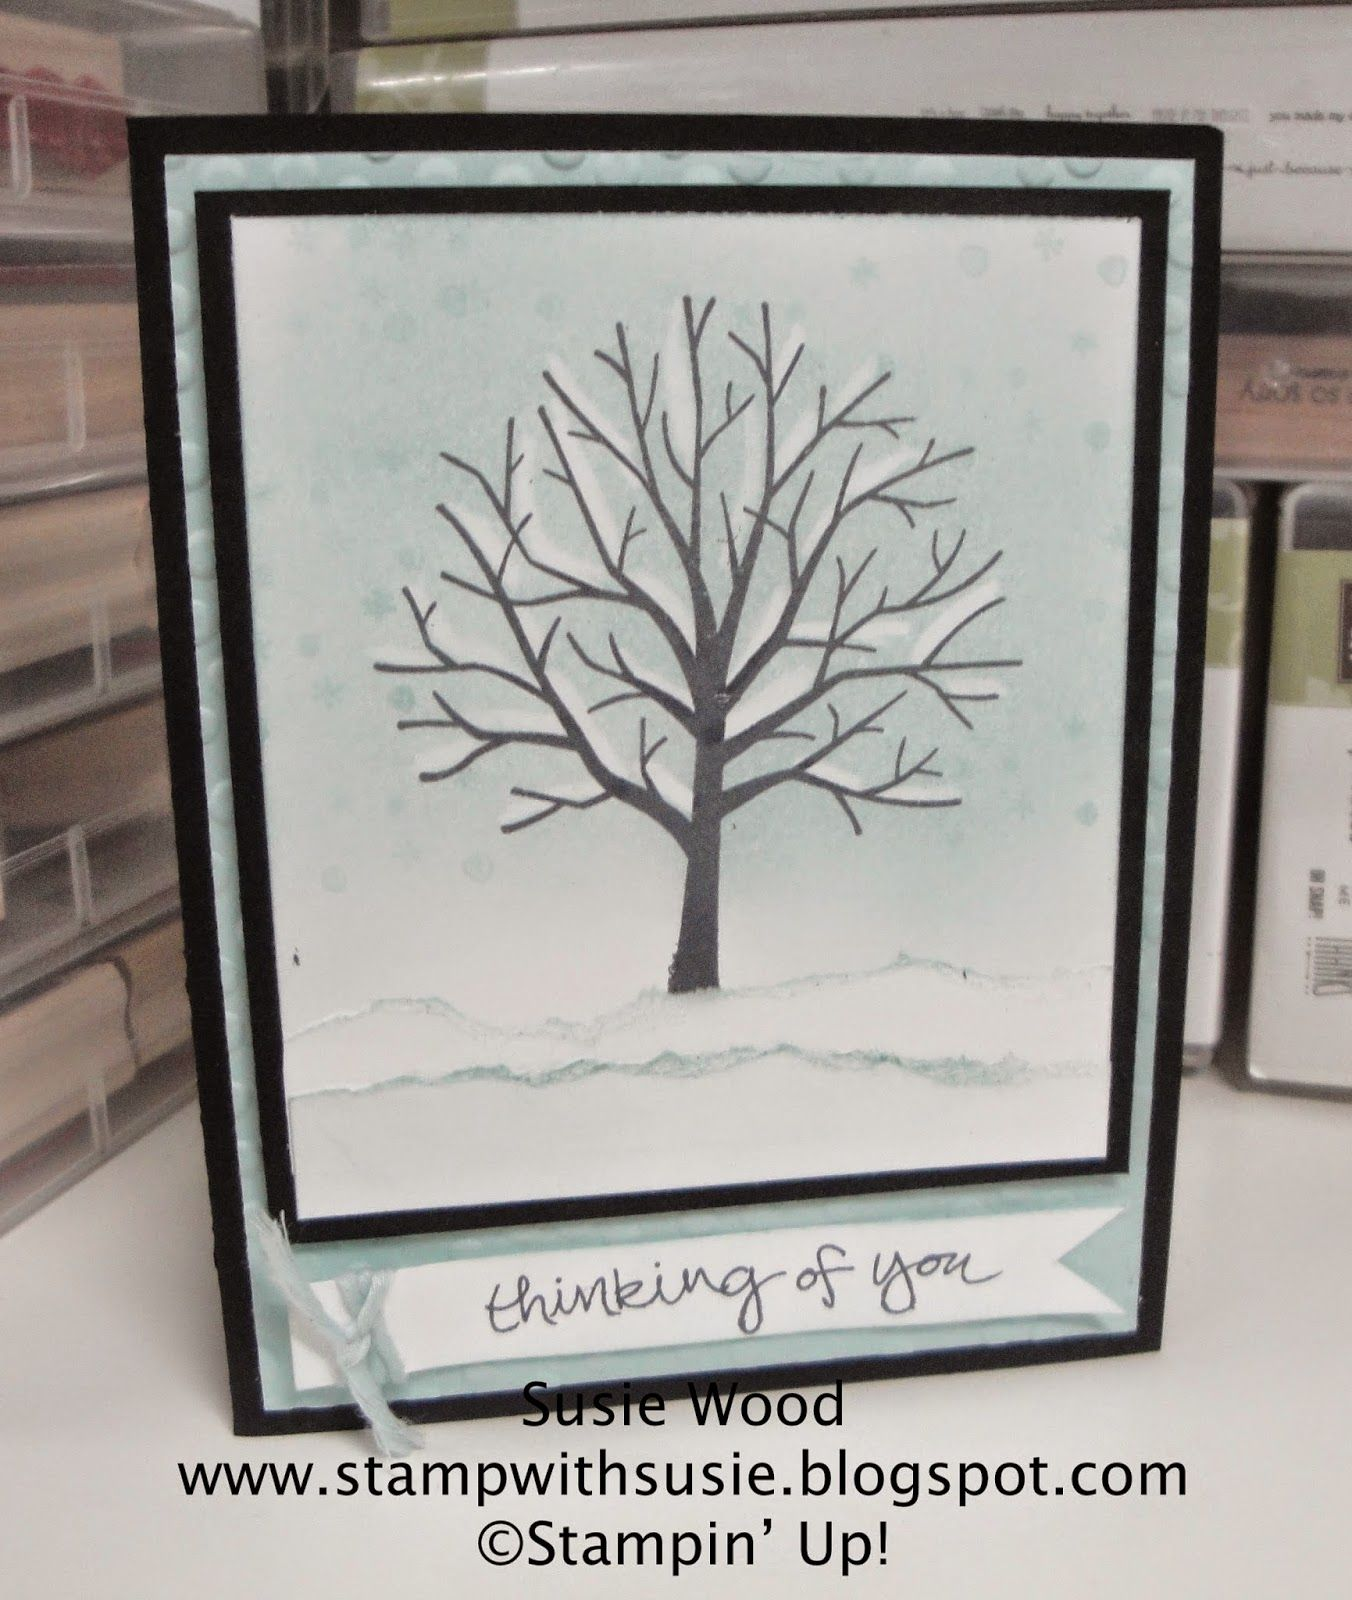 Stampin' Up!- A winterland card using 'Sheltering Tree'- doing the crayon resist technique!